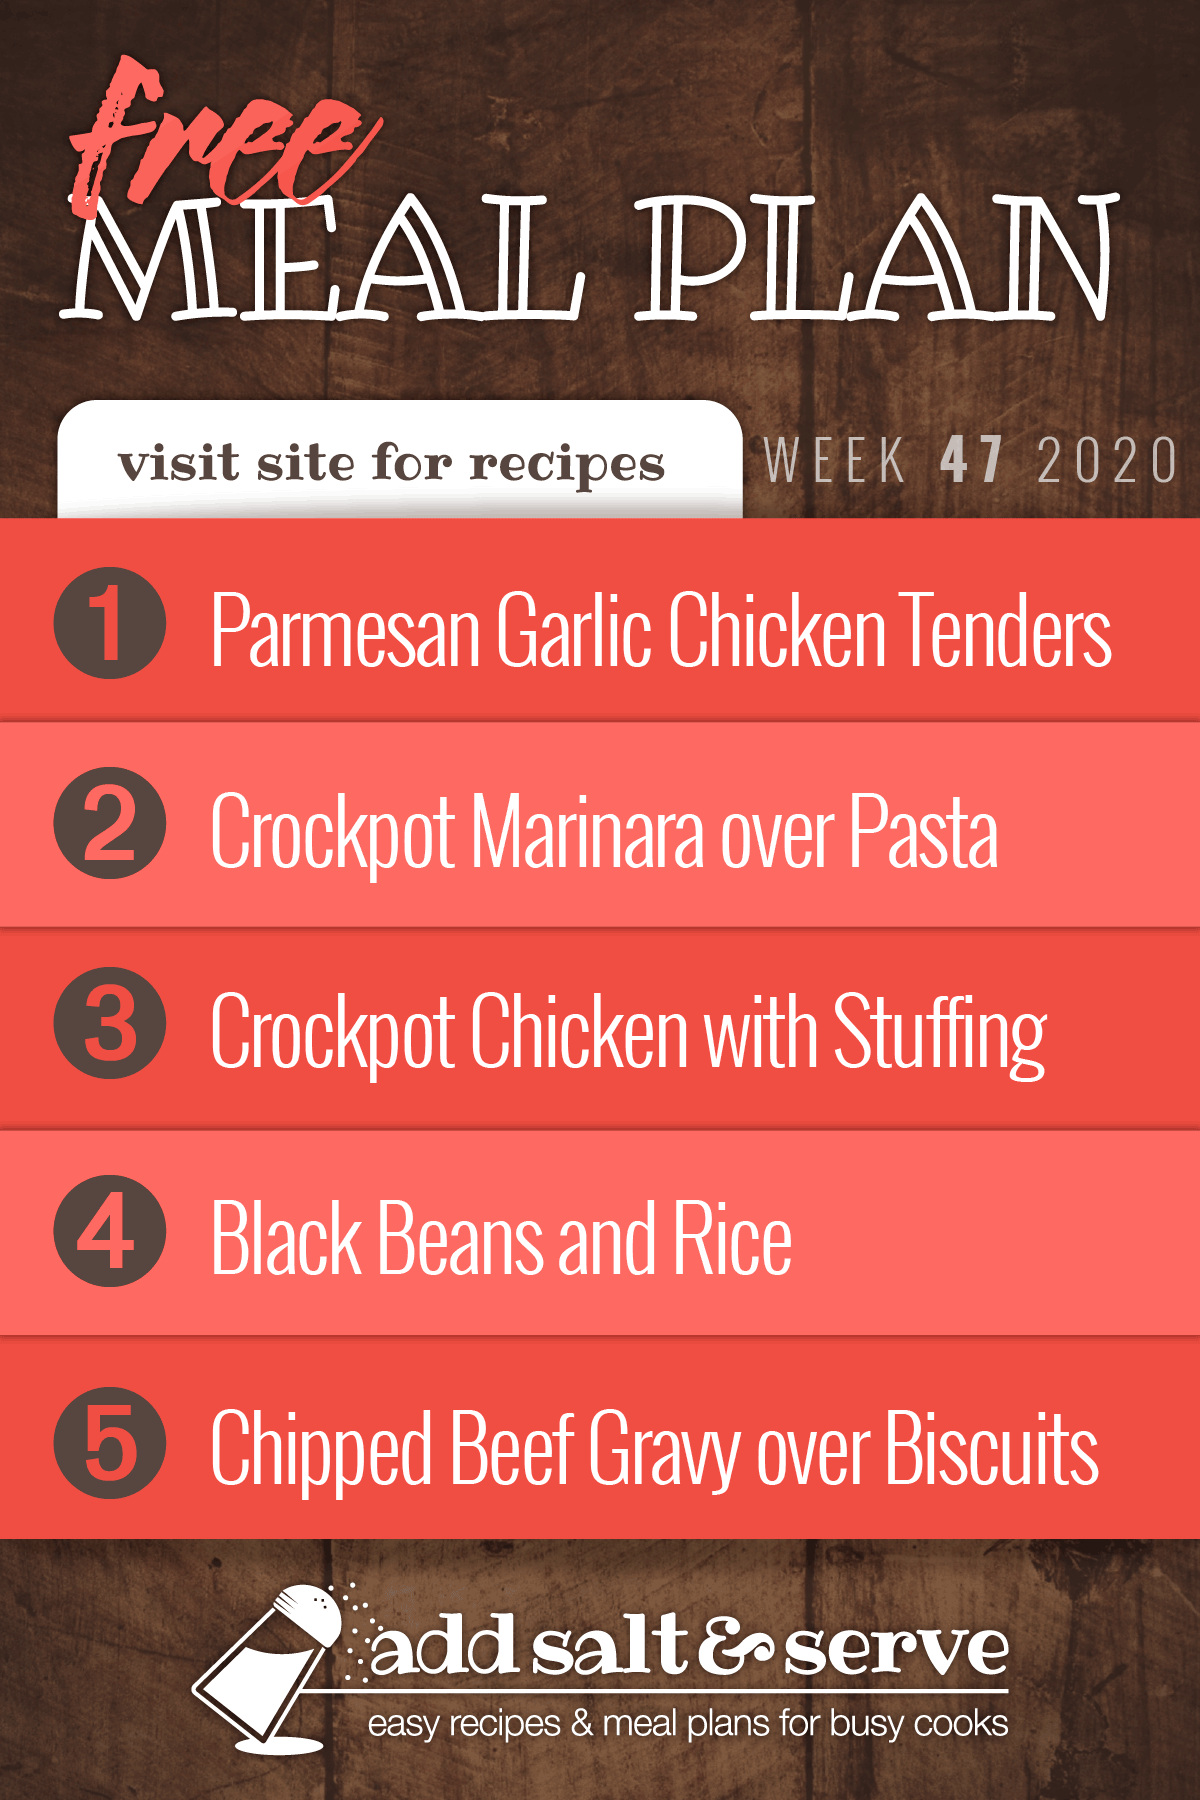 Free Meal Plan for Week 47 2020: Baked Parmesan Garlic Chicken Tenders, Crockpot Marinara over Pasta, Crockpot Chicken with Stuffing, Quick & Easy Black Beans and Rice, Chipped Beef Gravy over Biscuits - Visit Add Salt & Serve for recipes